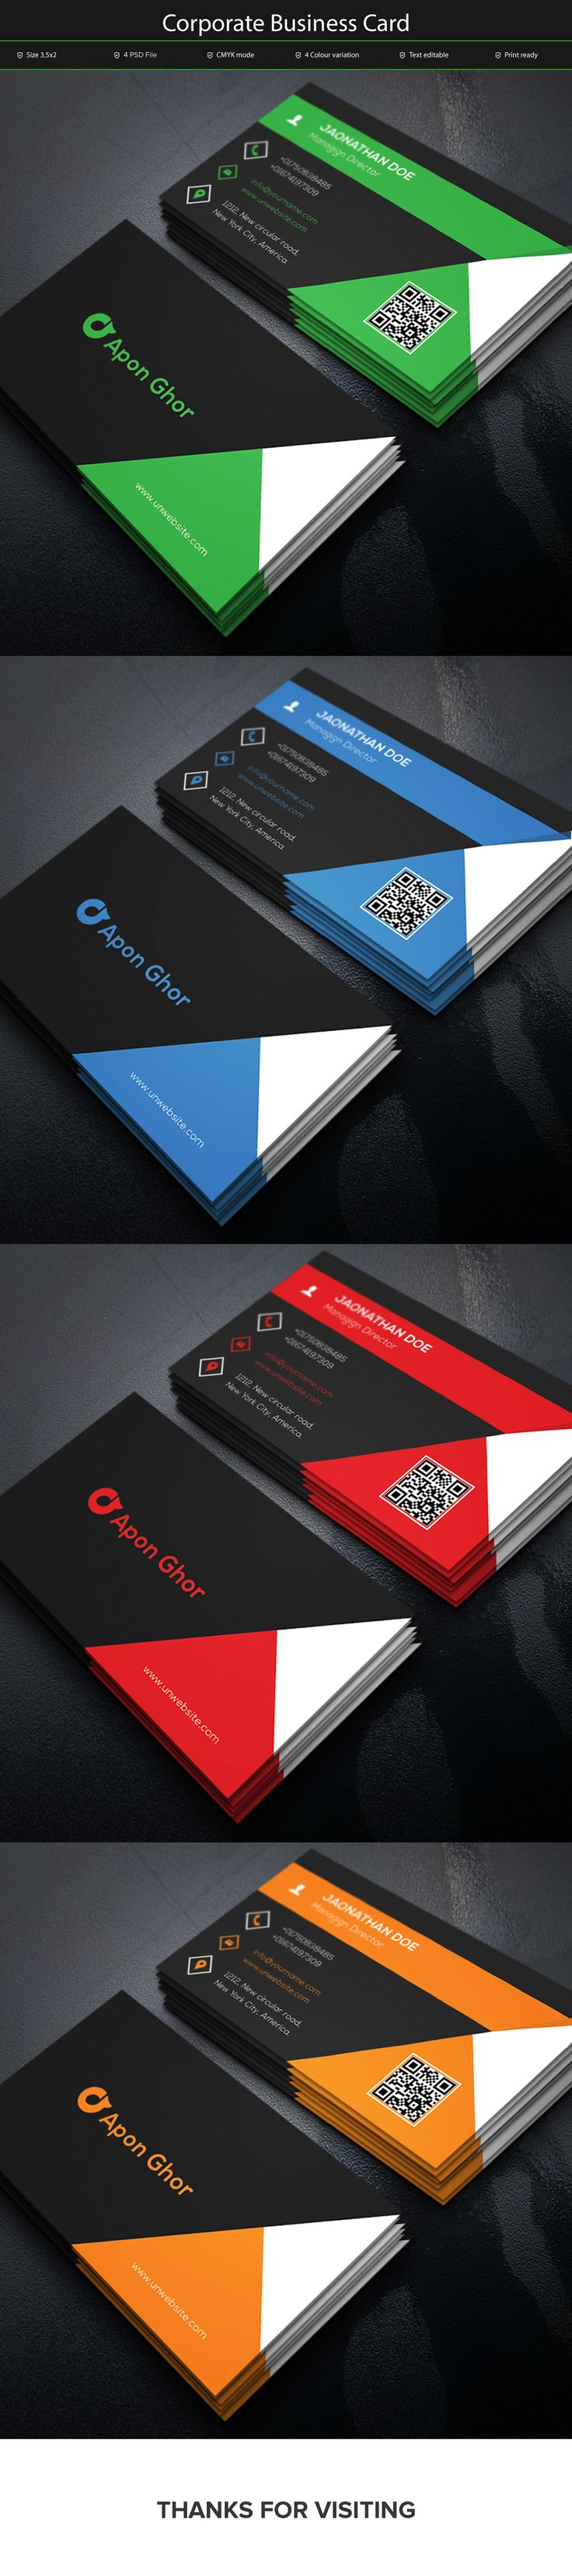 13 Best Business Card Images On Pinterest Business Cards Blue